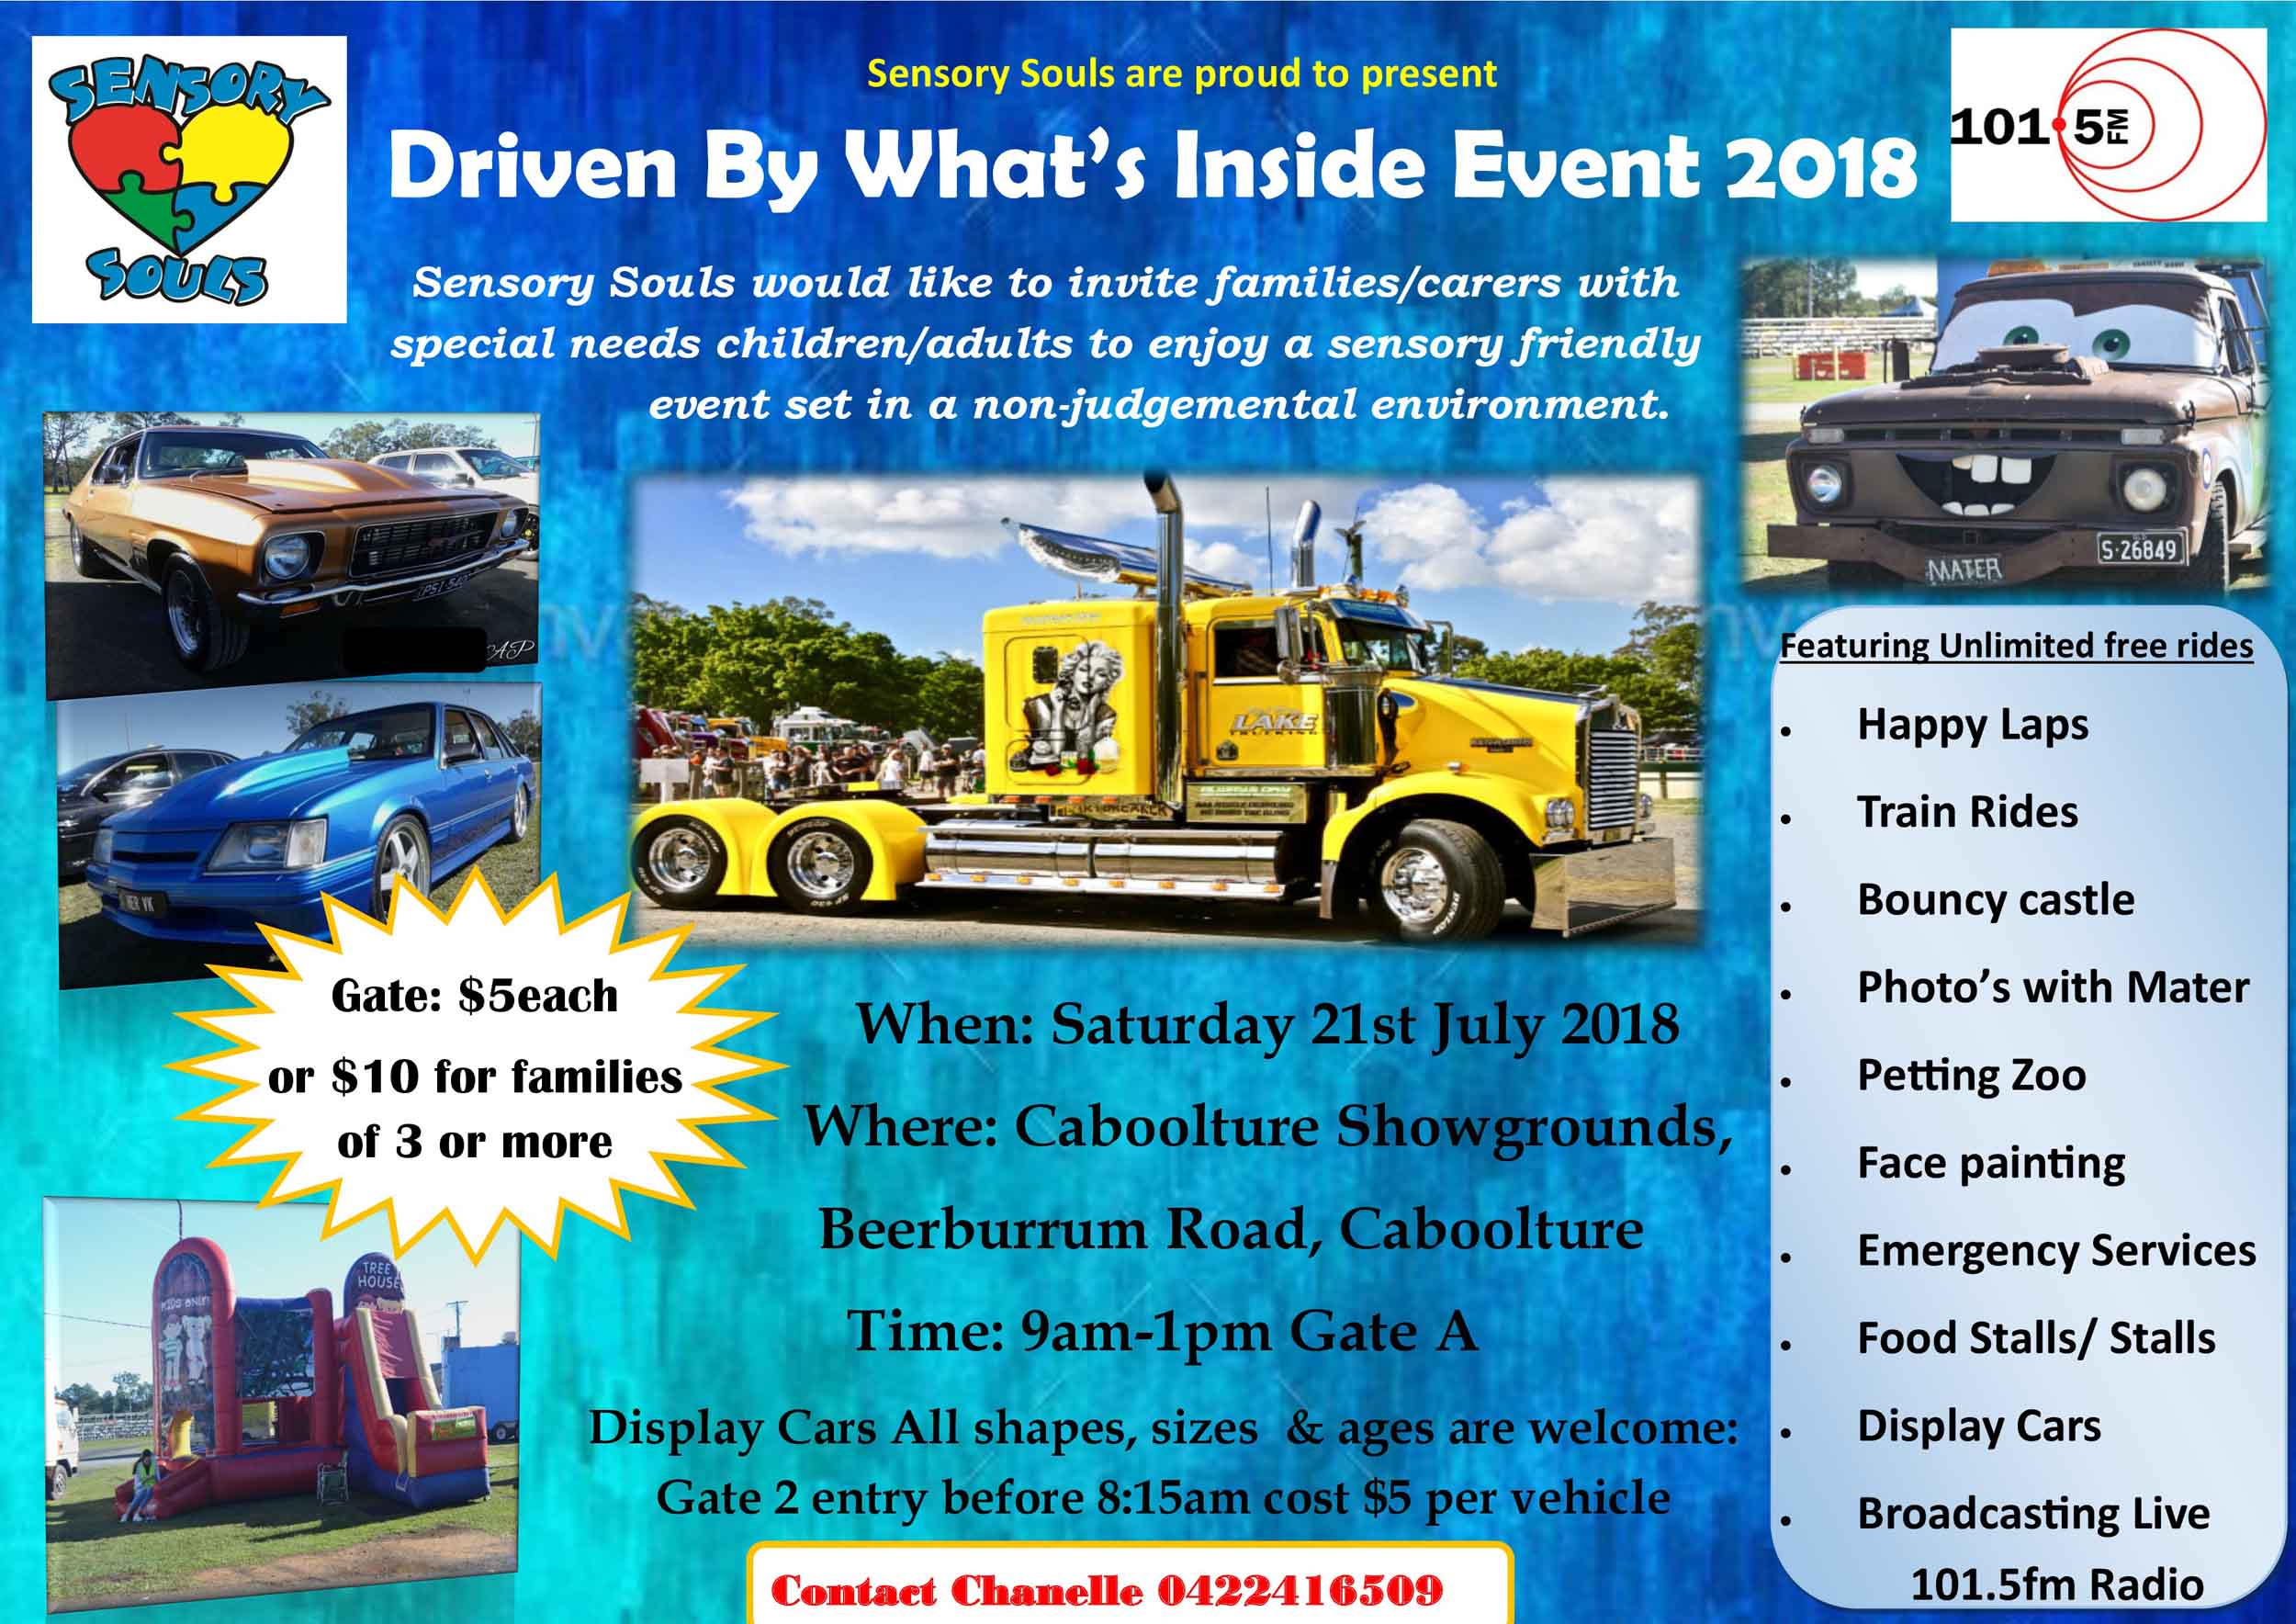 Driven By What's Inside event 2018 PDF-page-0 small